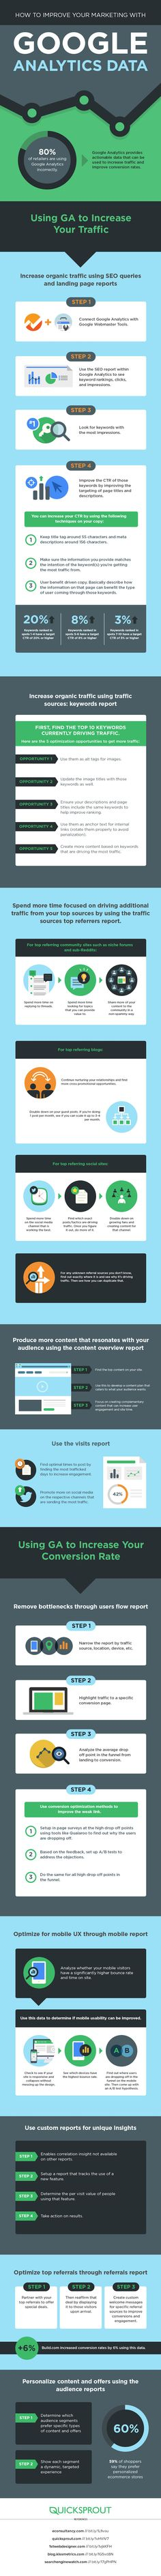 Just started learning out this! How To Improve Your Conversion Rate With Google Analytics Data - #infographic #marketing